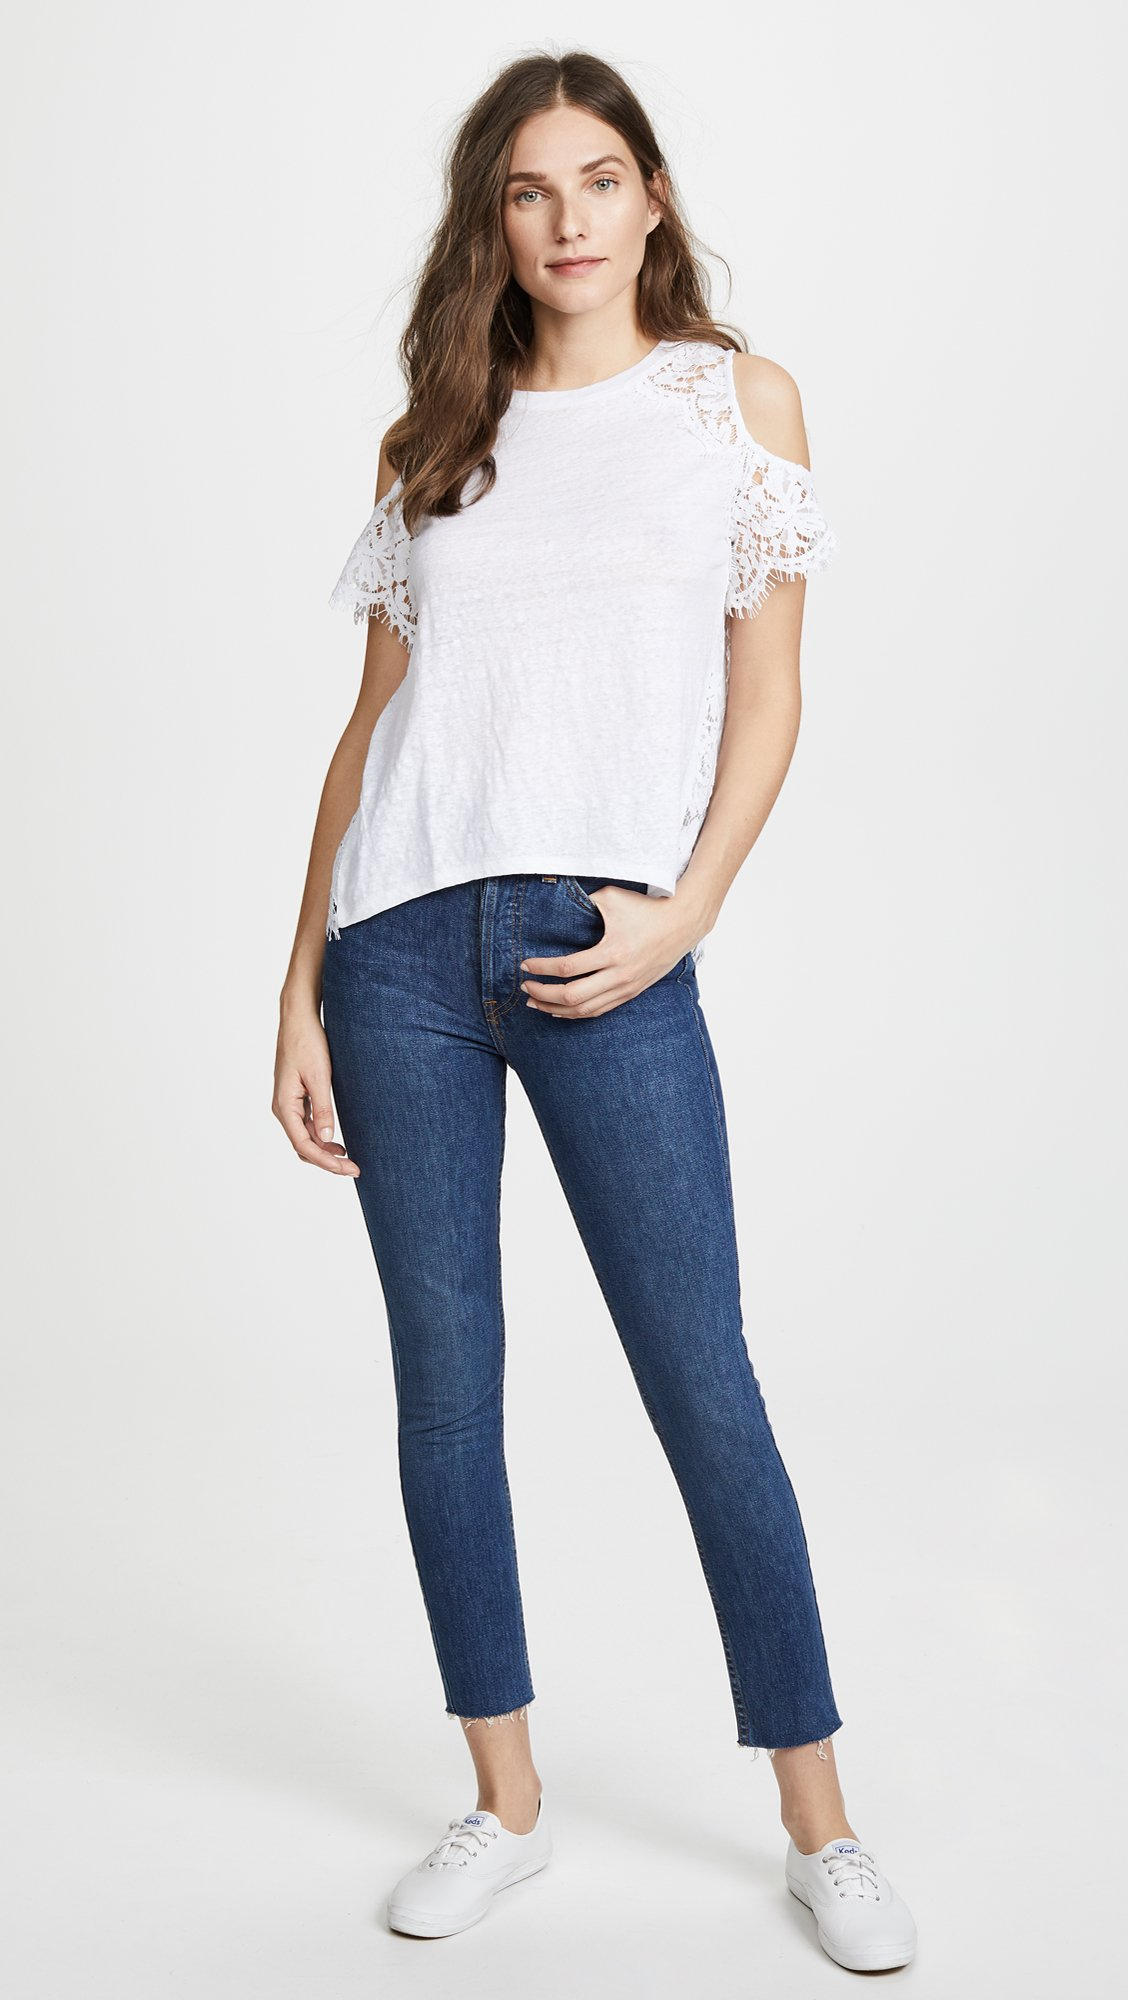 Generation Love Women's London Lace Cold Shoulder Tee, White, Small by Generation Love (Image #5)